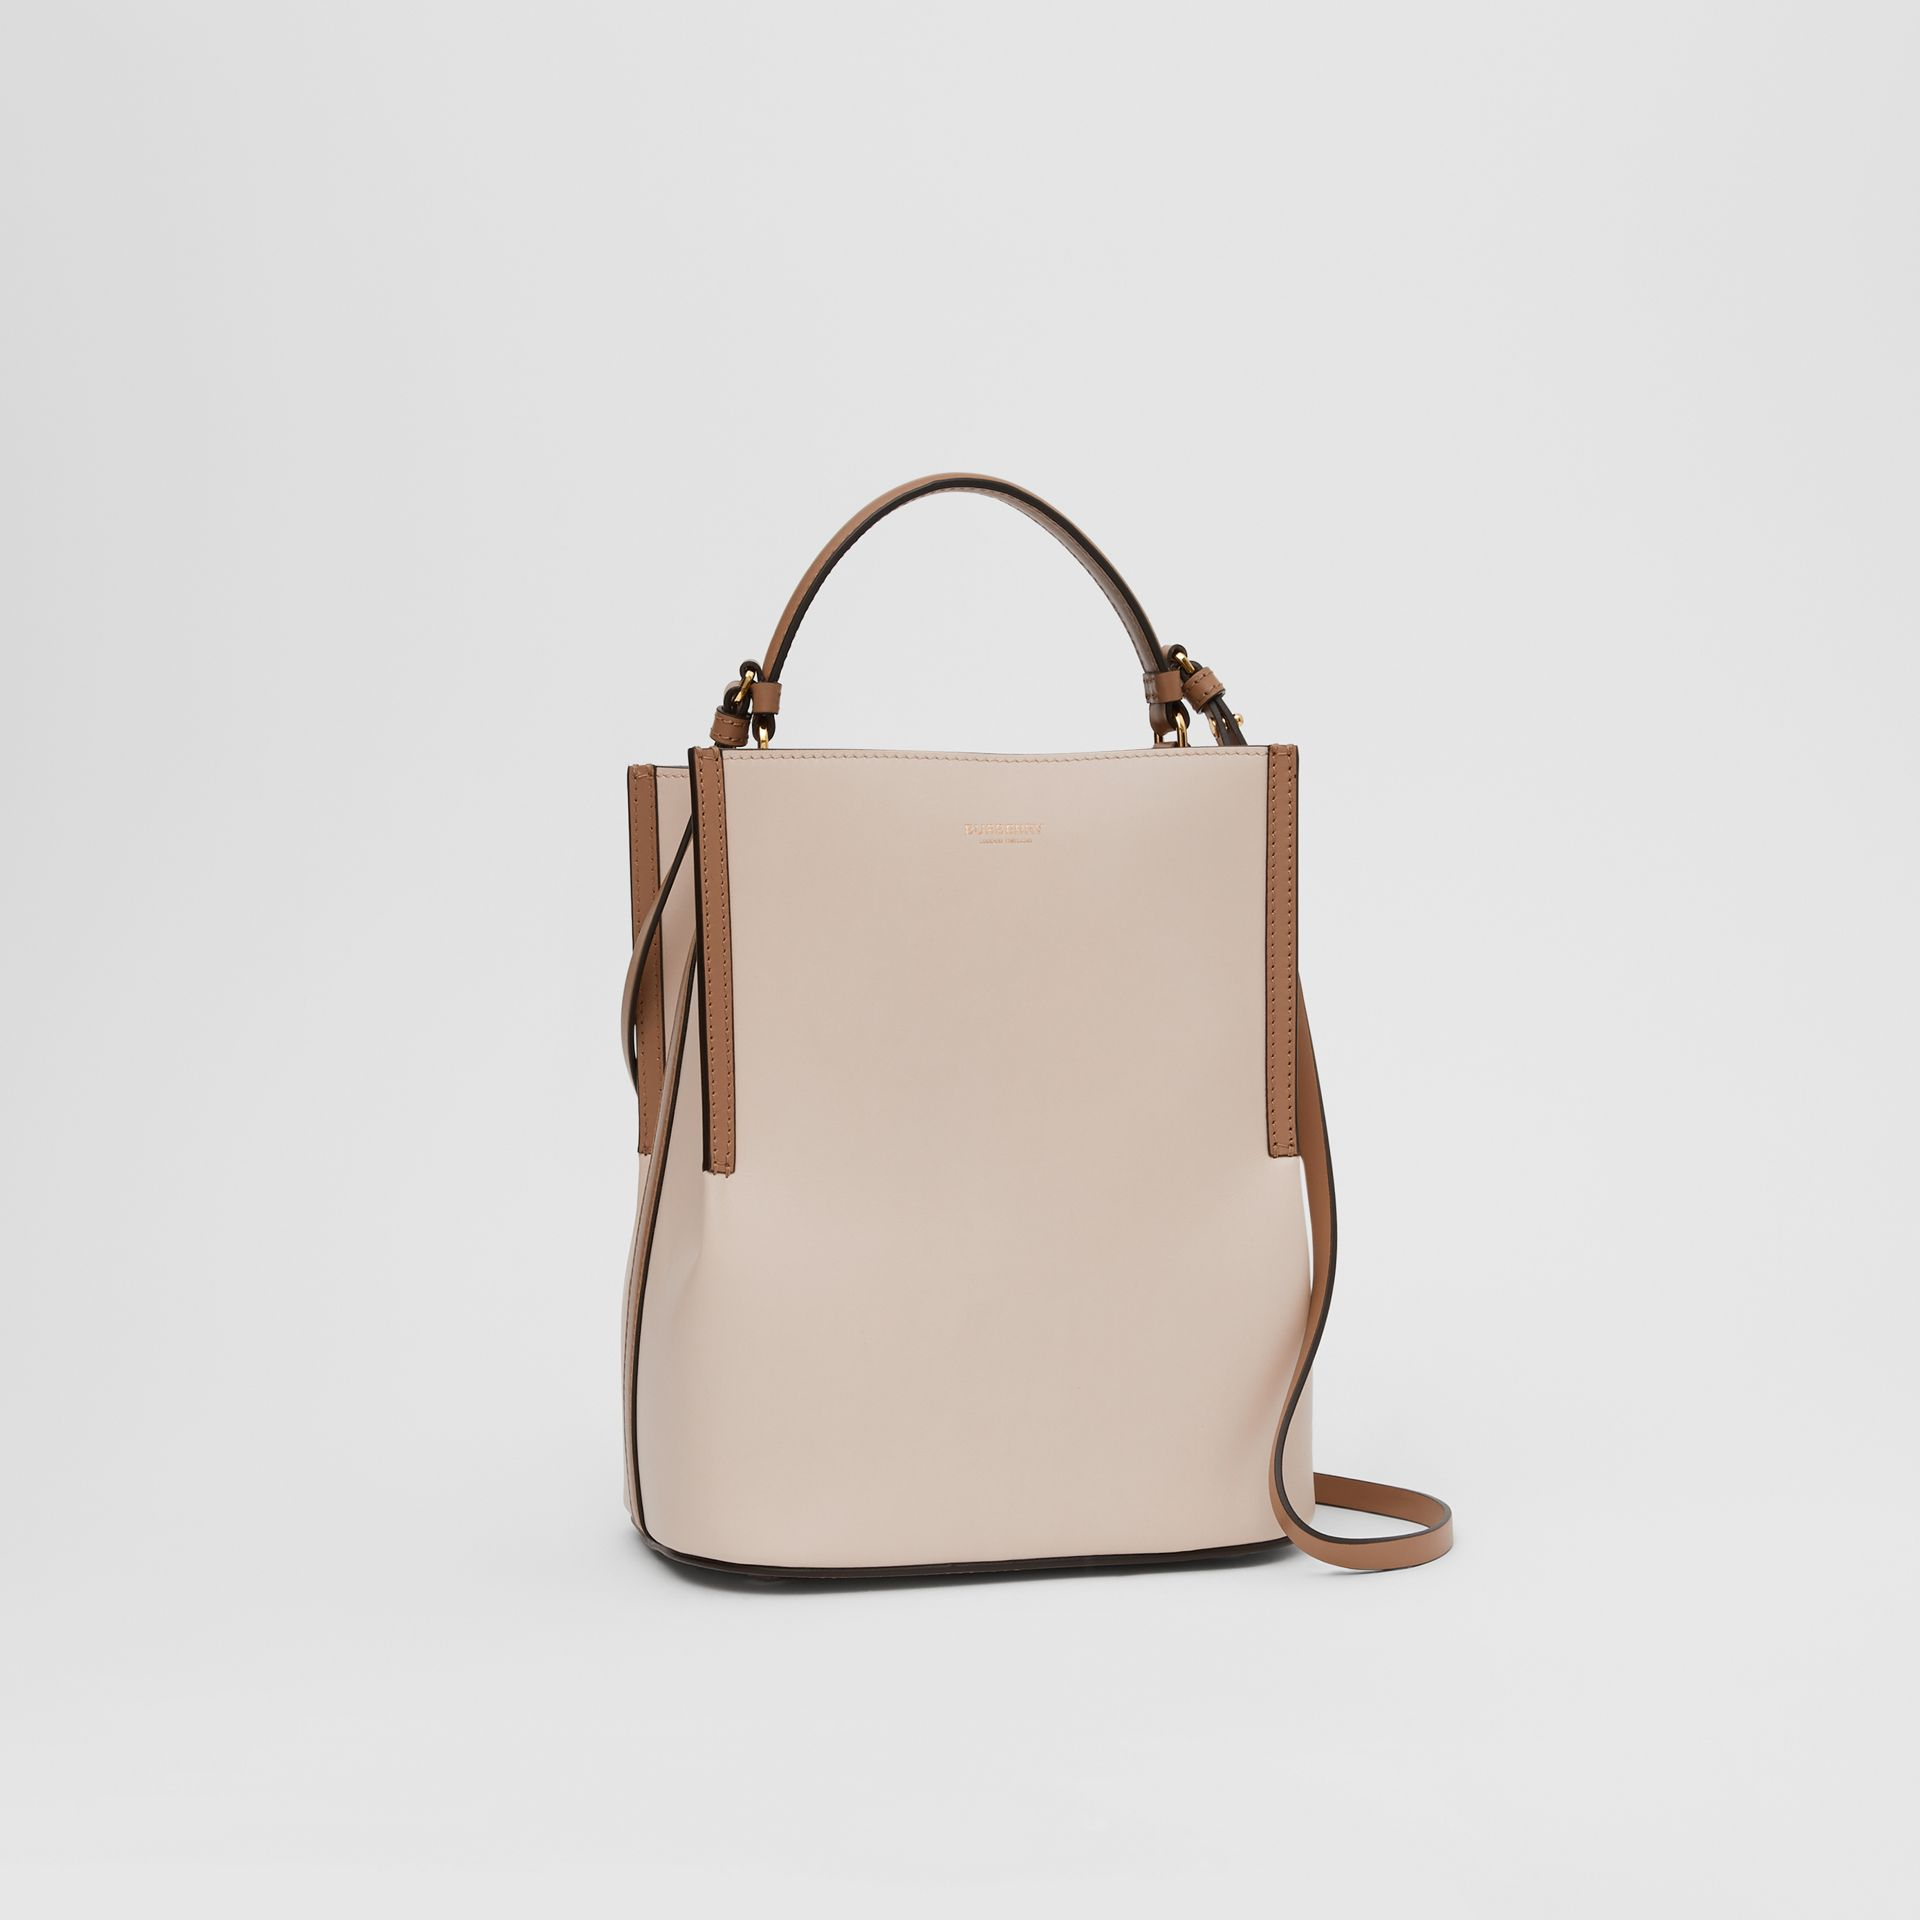 Small Two-tone Leather Peggy Bucket Bag in Buttermilk - Women | Burberry - gallery image 4